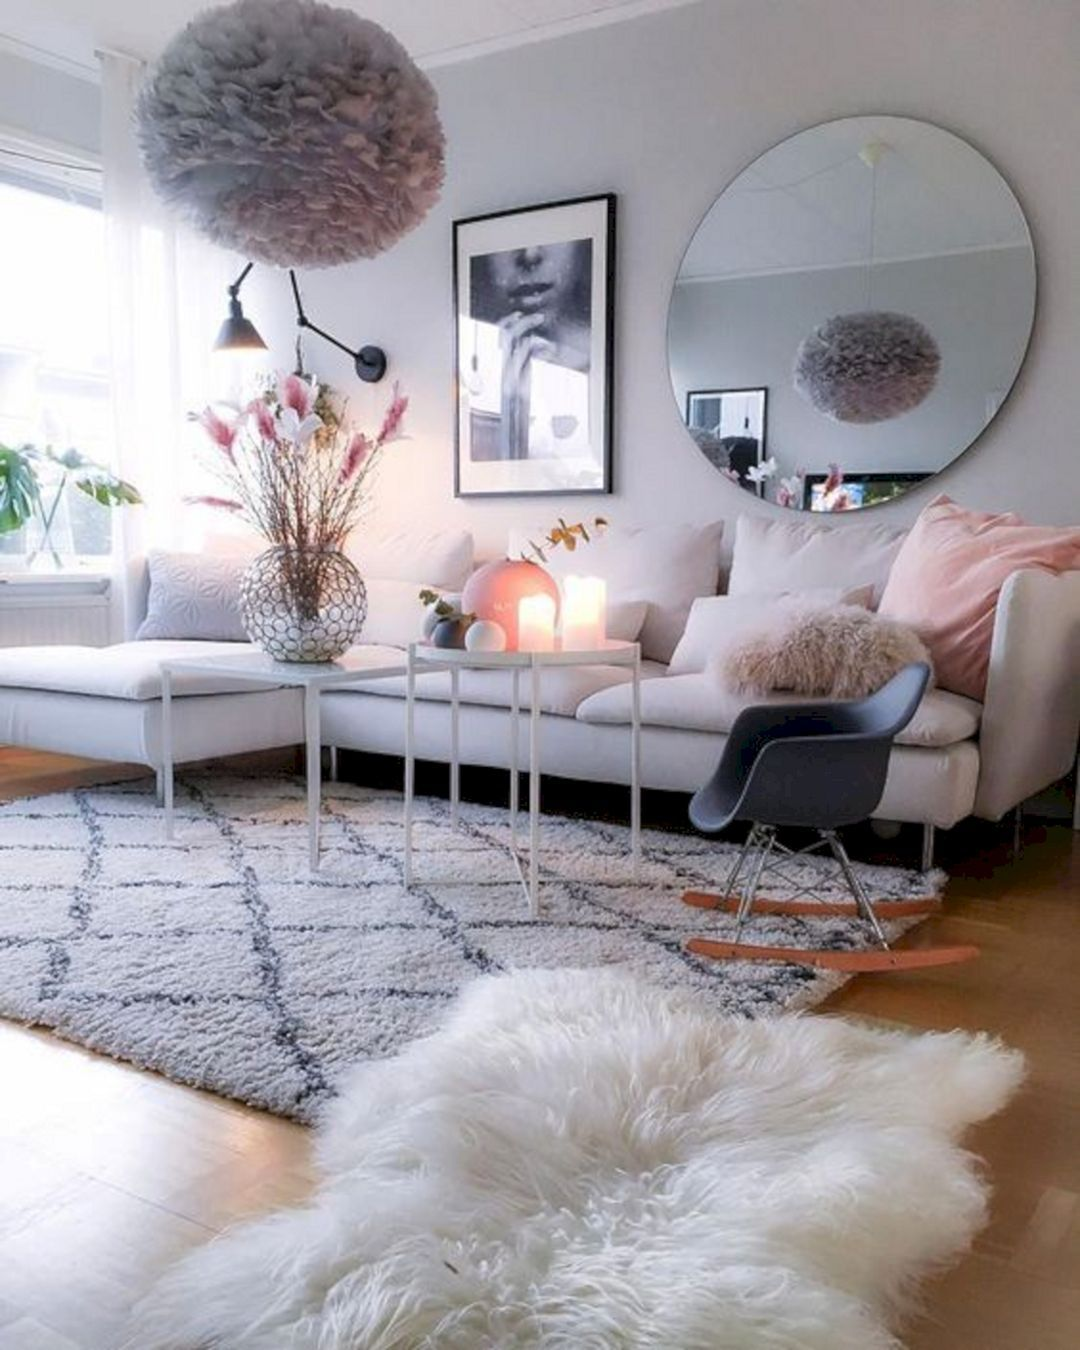 Chic Living Room Decorating Ideas And Design 36 Chic 27 Best Rustic Chic Living Room As And D Living Room Decor Cozy Living Room Decor Modern Chic Living Room